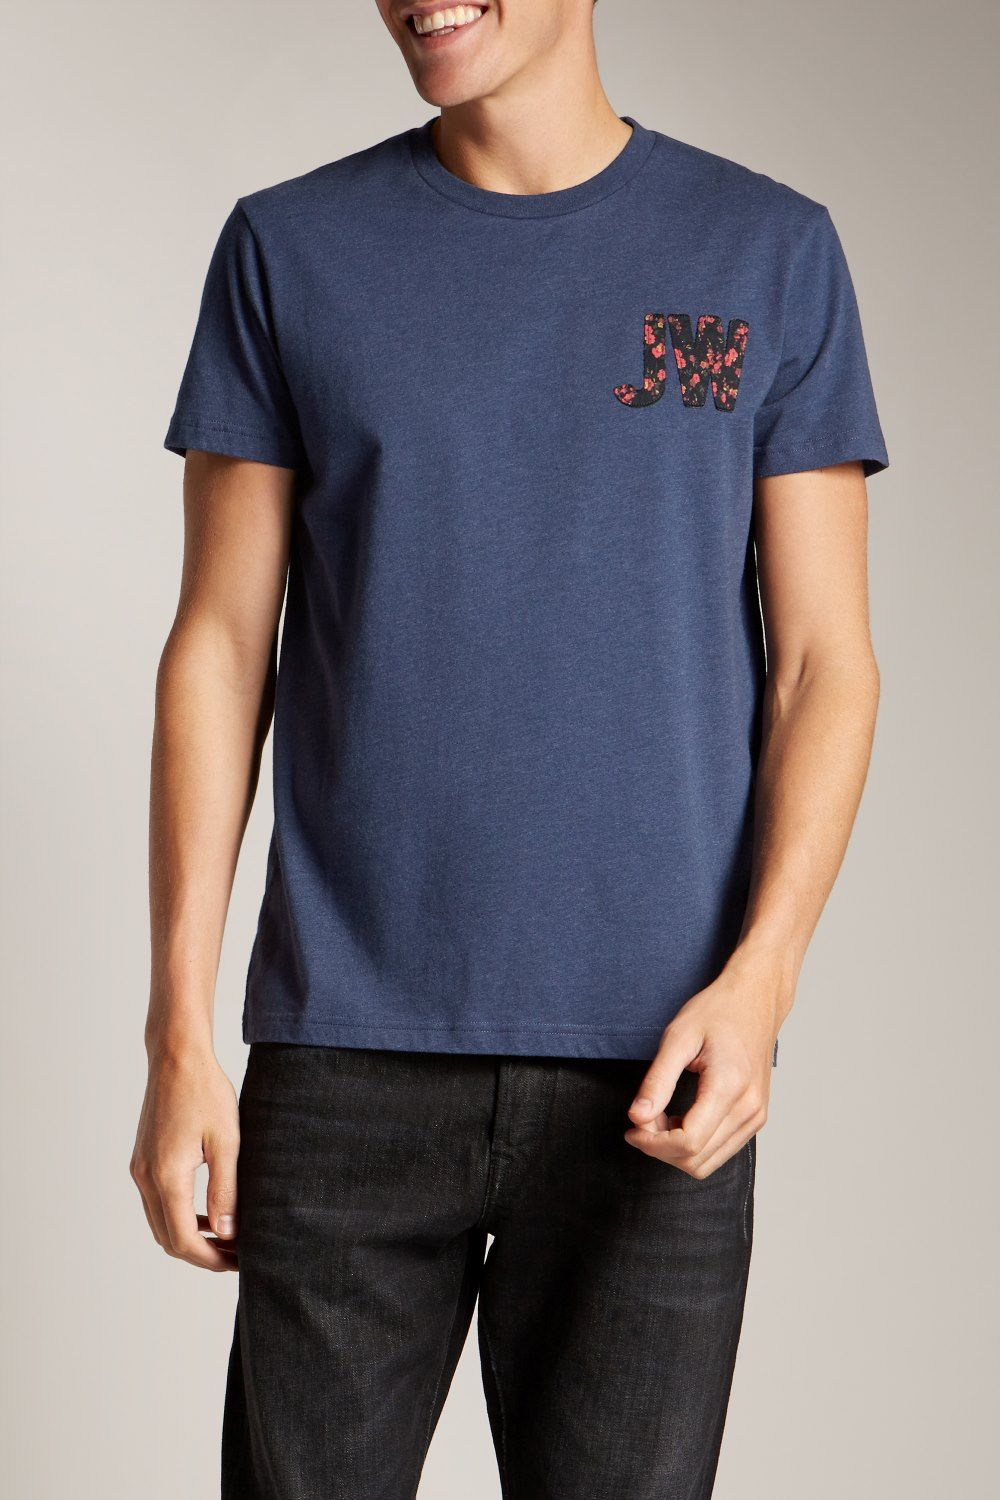 The Camberwell Jw Applique Tee | Jack Wills